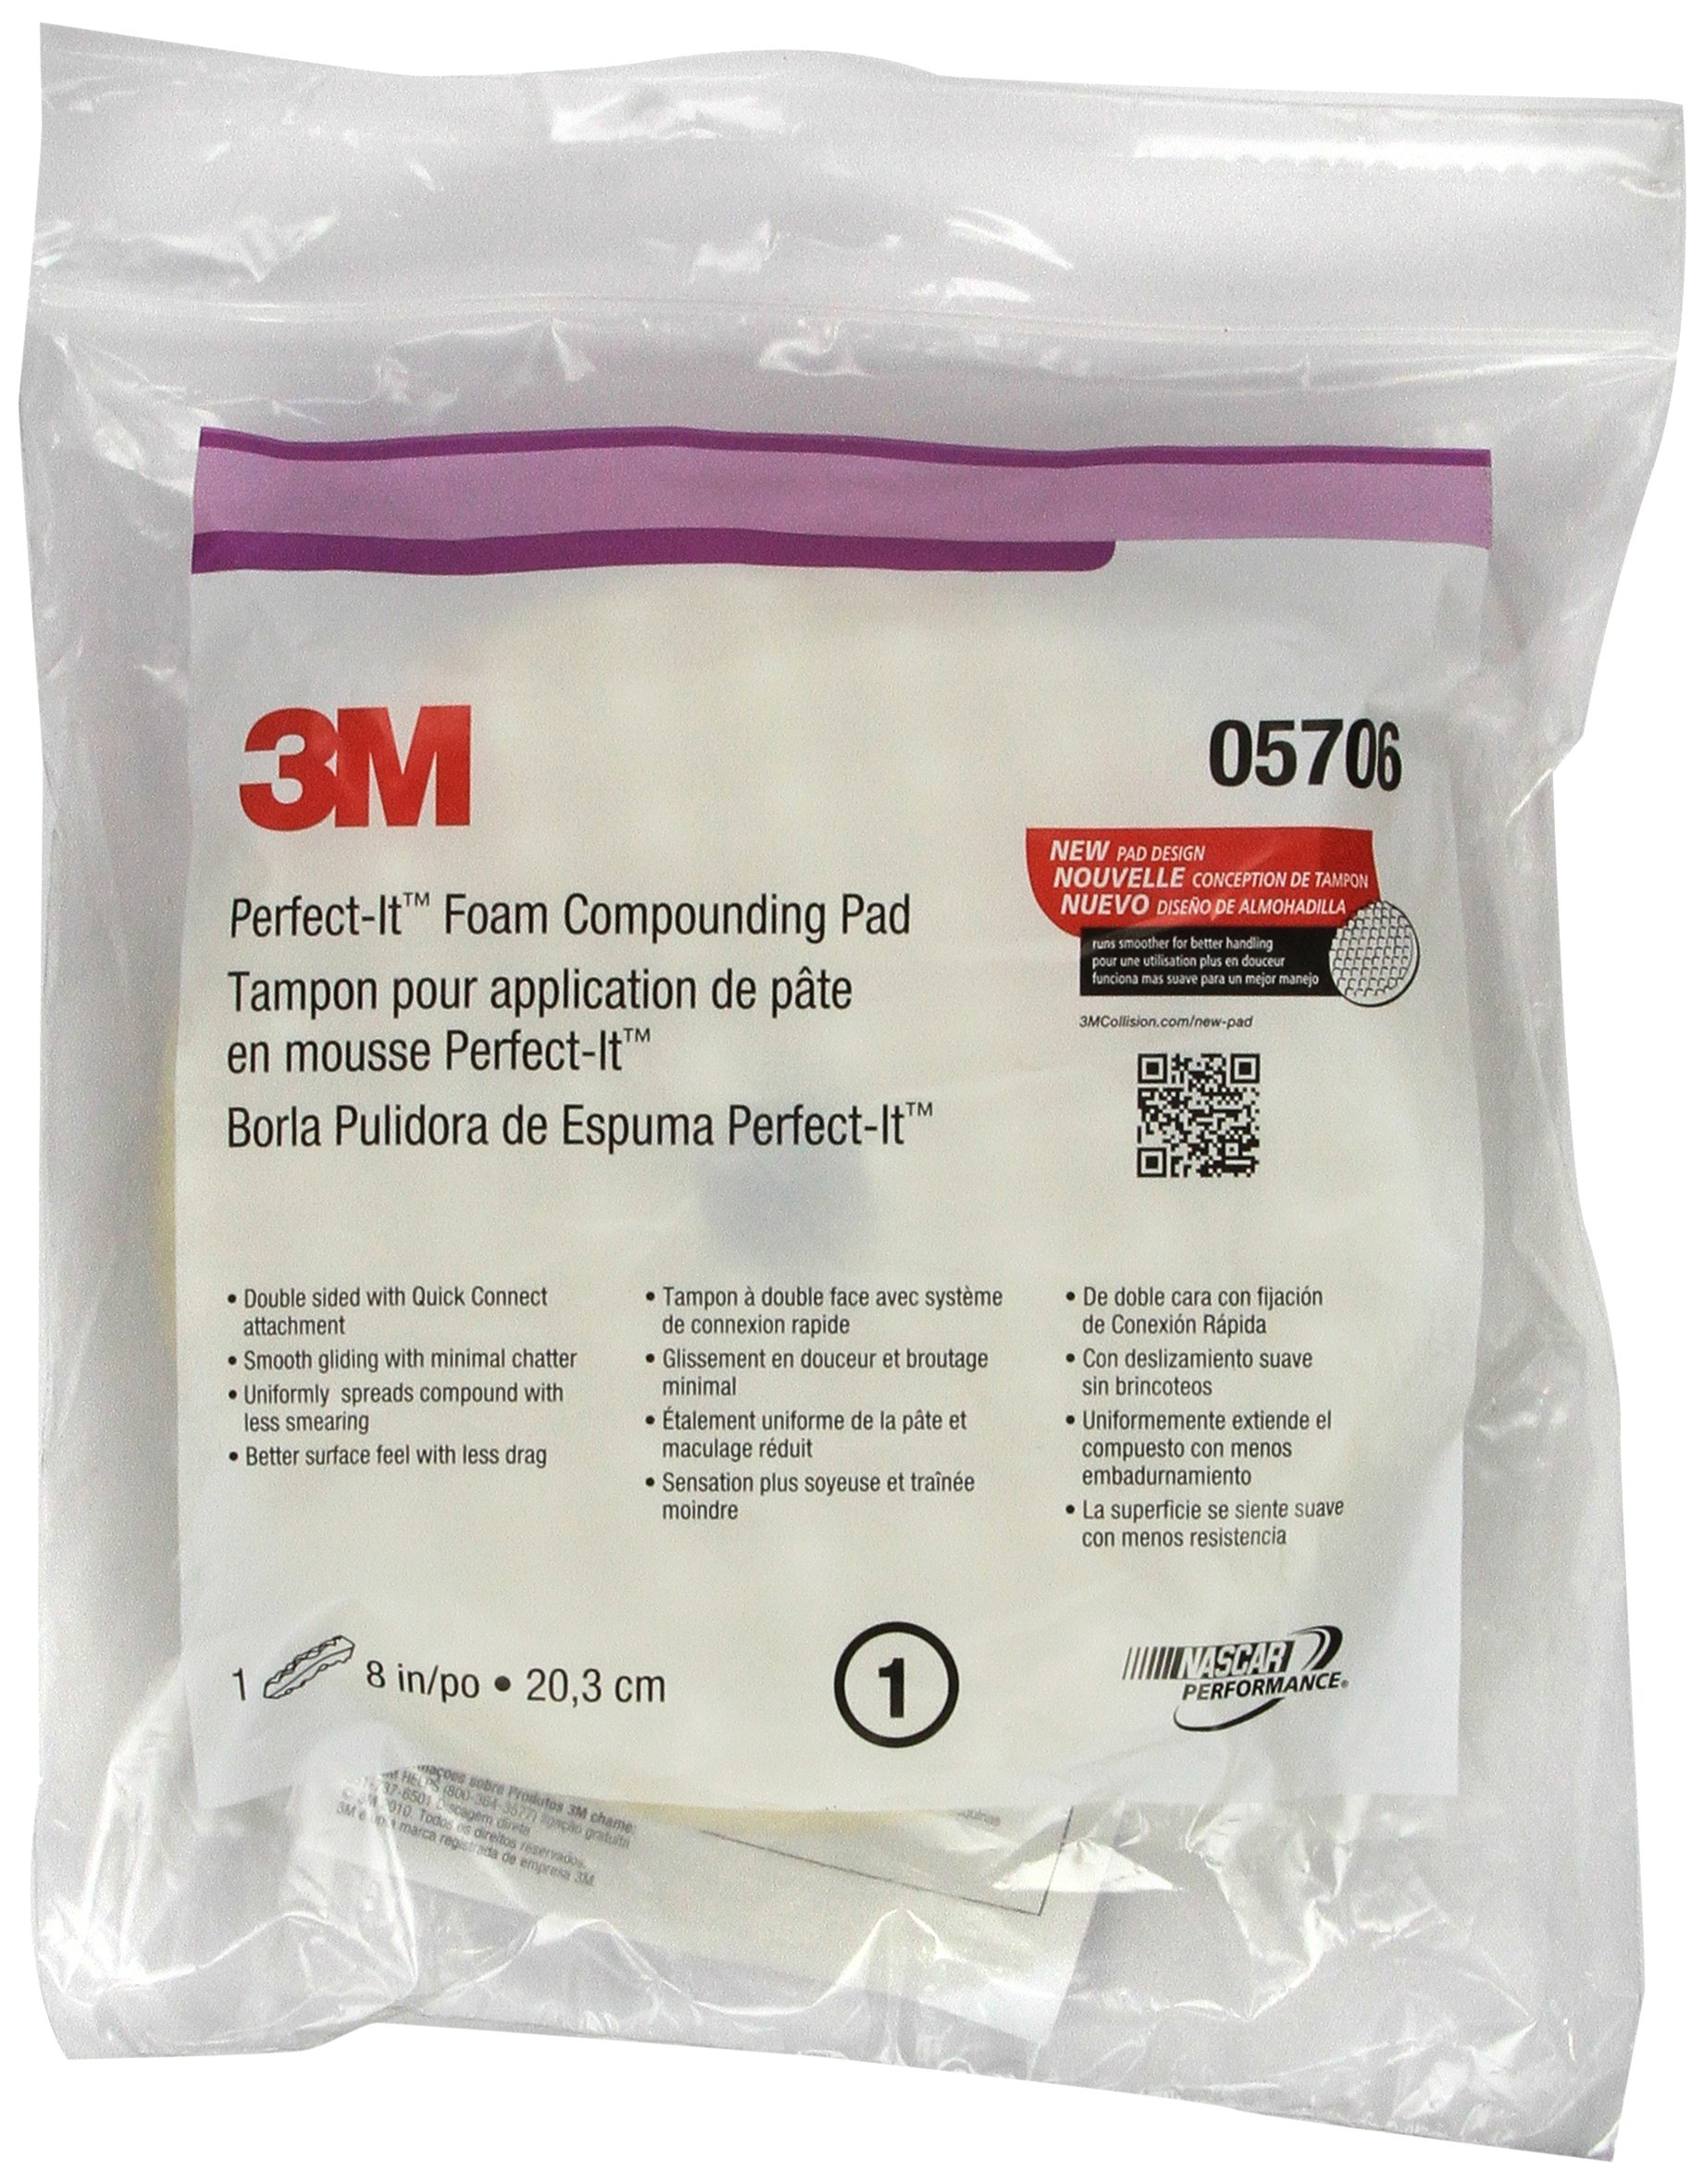 3M 05706 Perfect-It 8-Inches Foam Compounding Pad